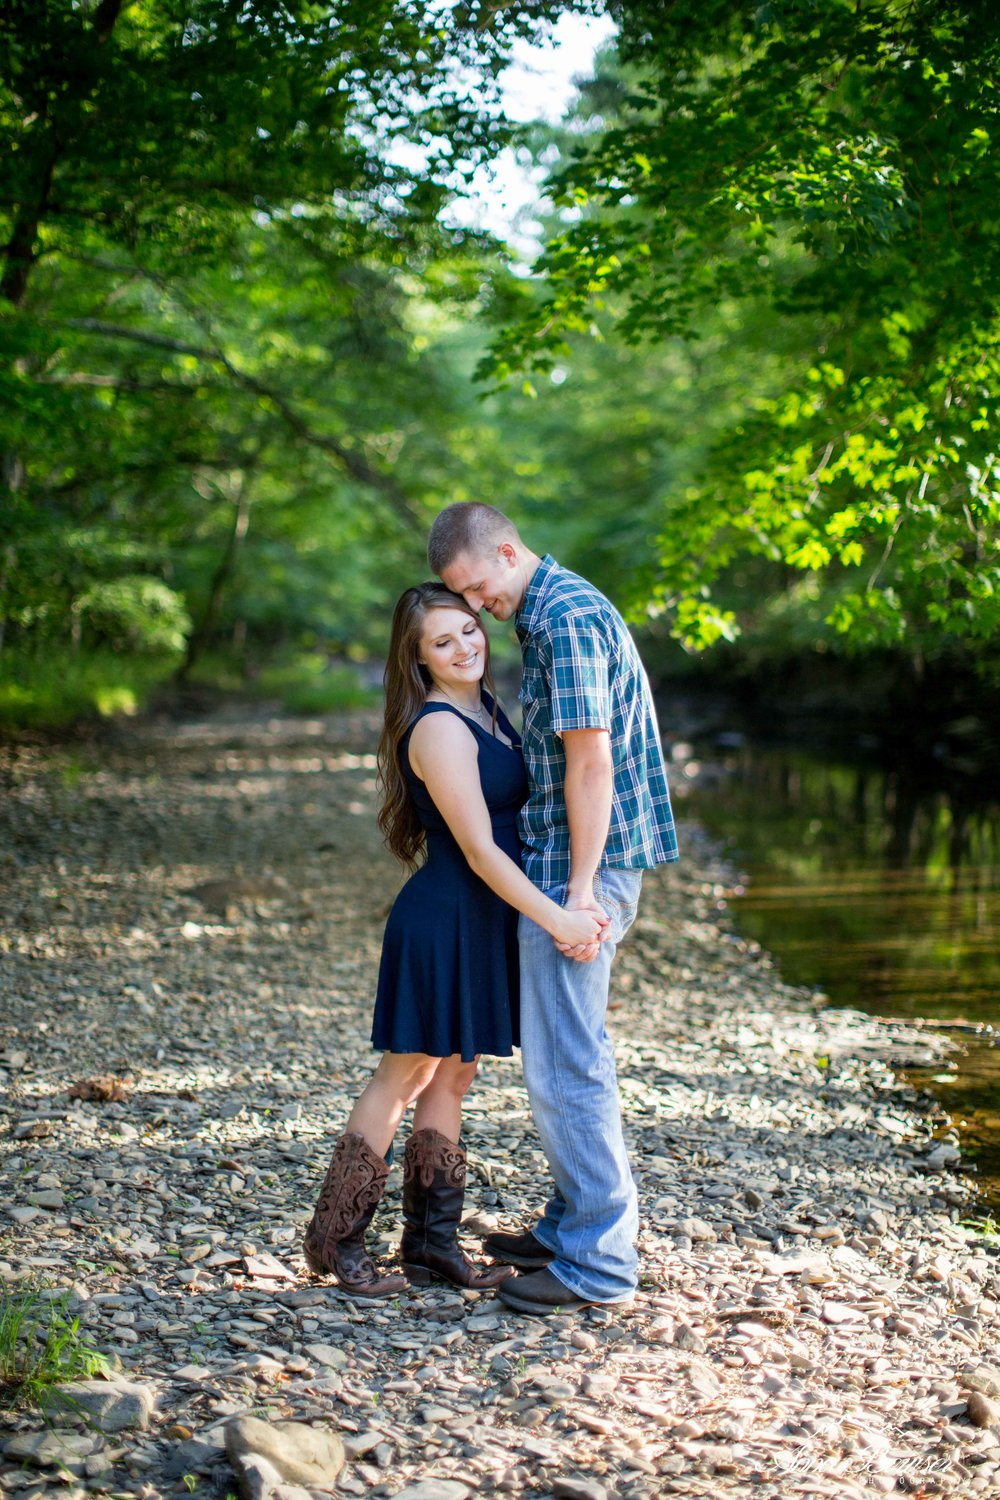 mountainengagement-annabowserphotography-virginiaengagementphotographer-20.jpg